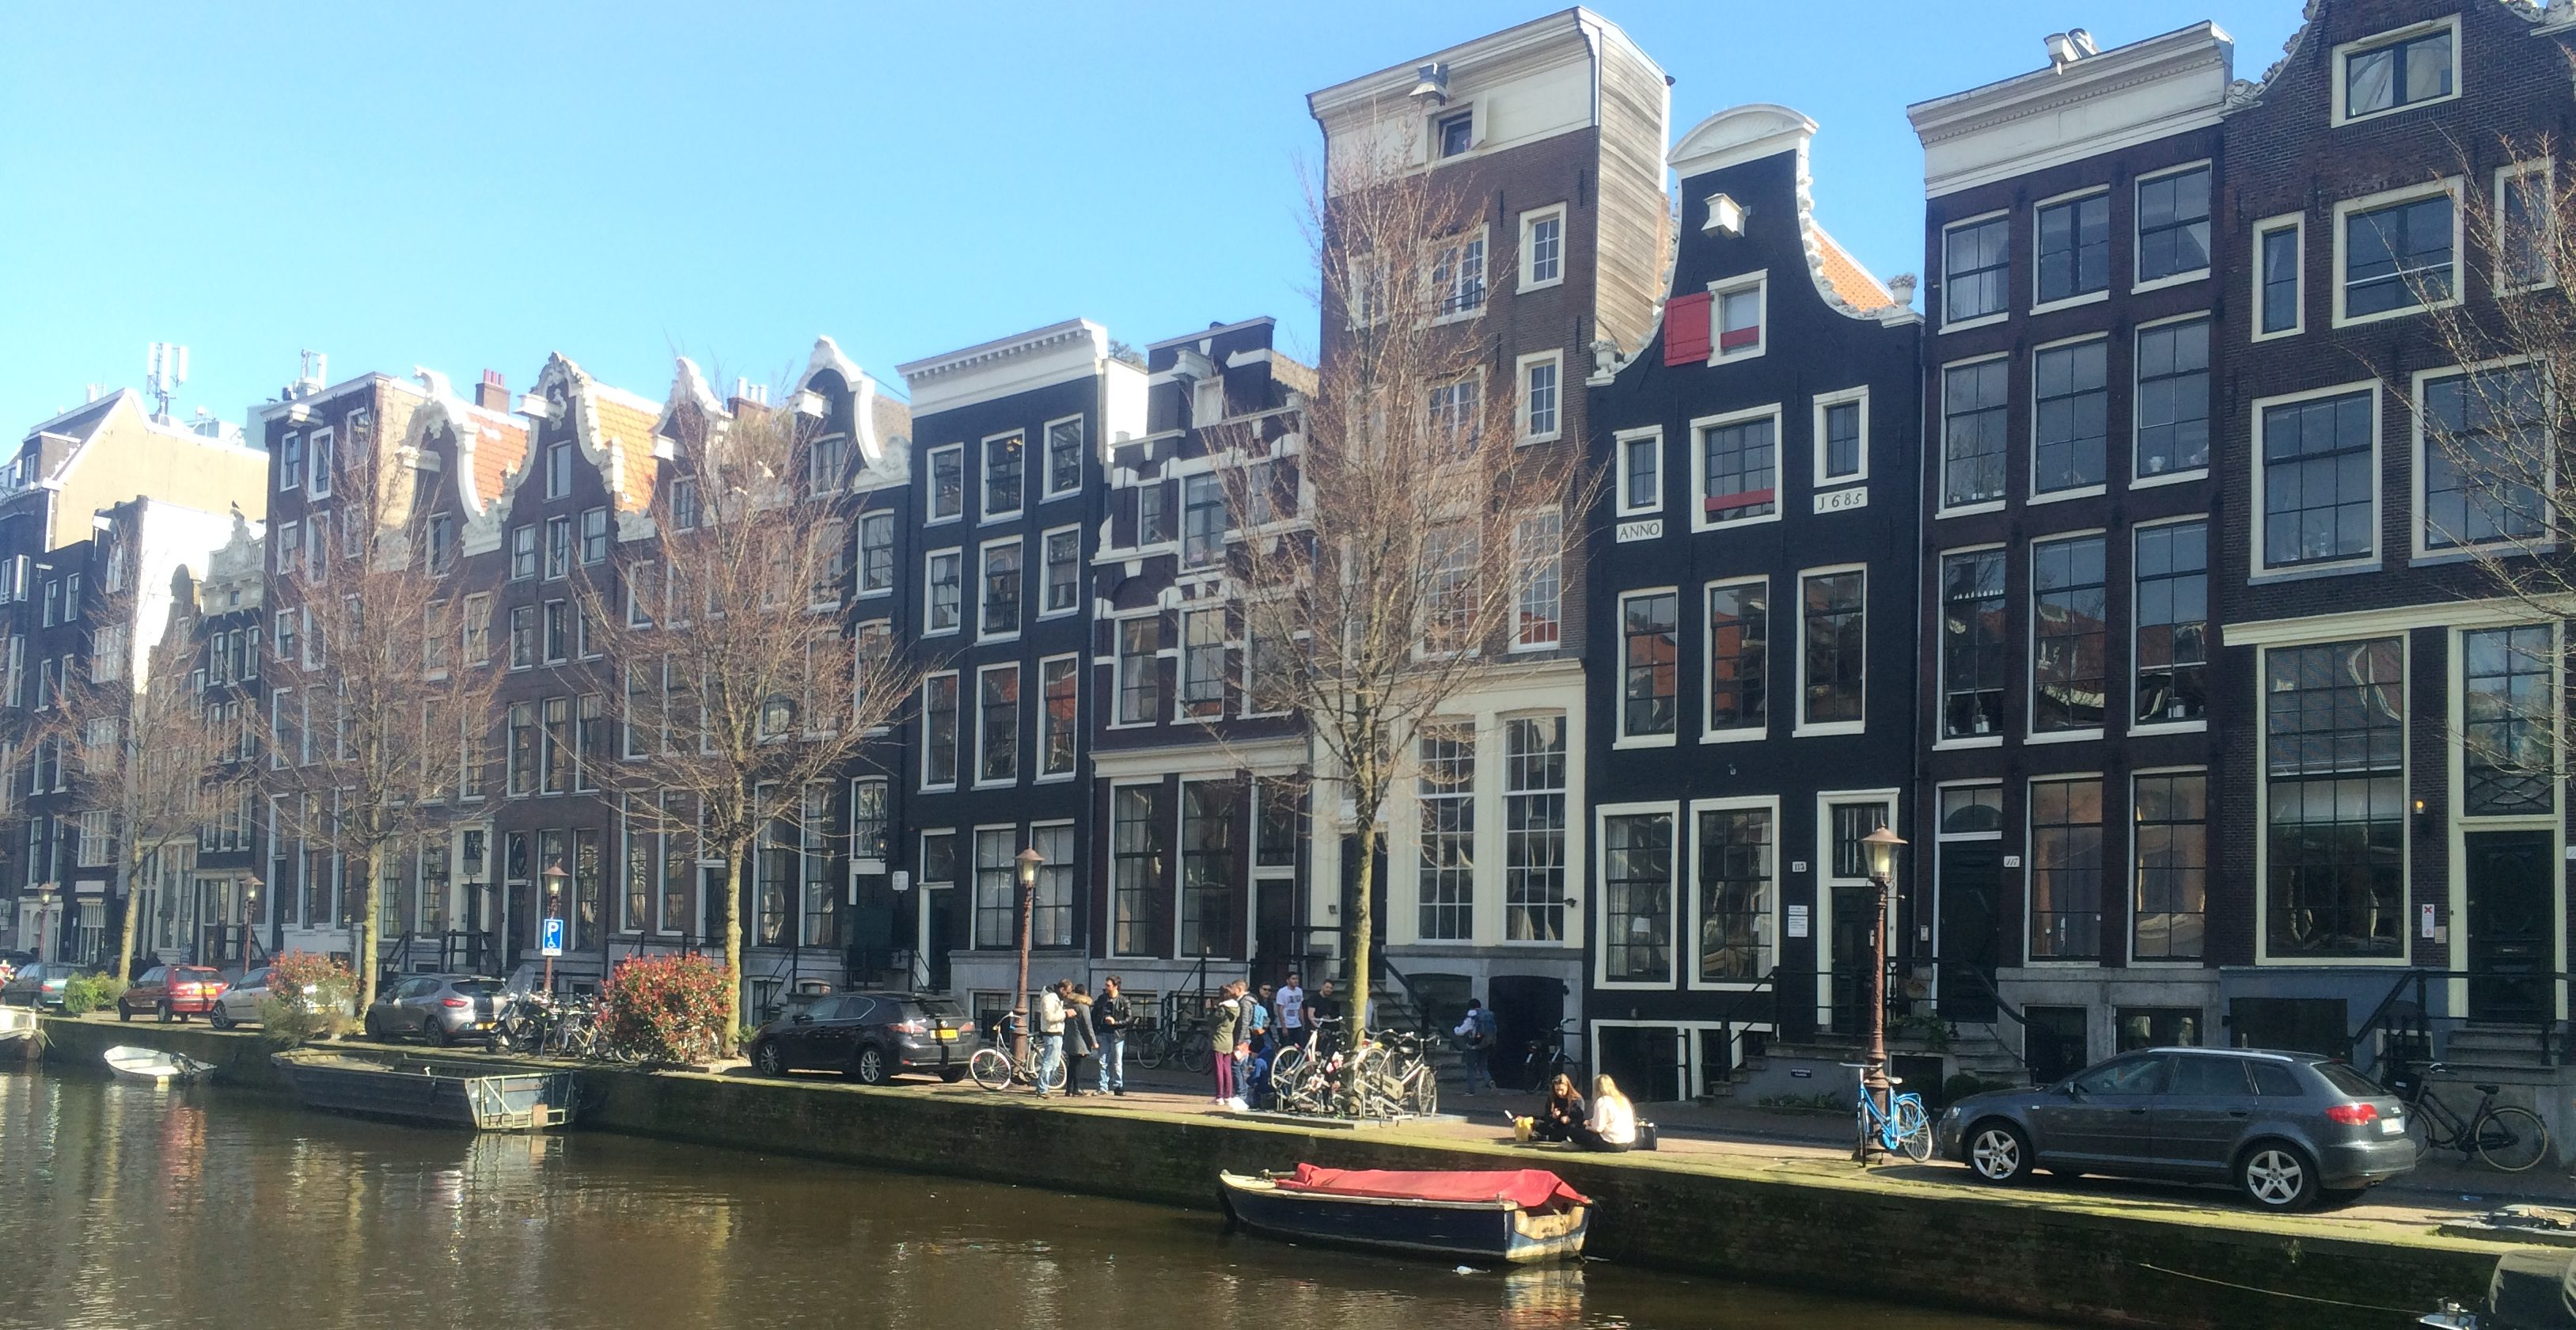 Tours to Take in Amsterdam - The Traveling Storygirl